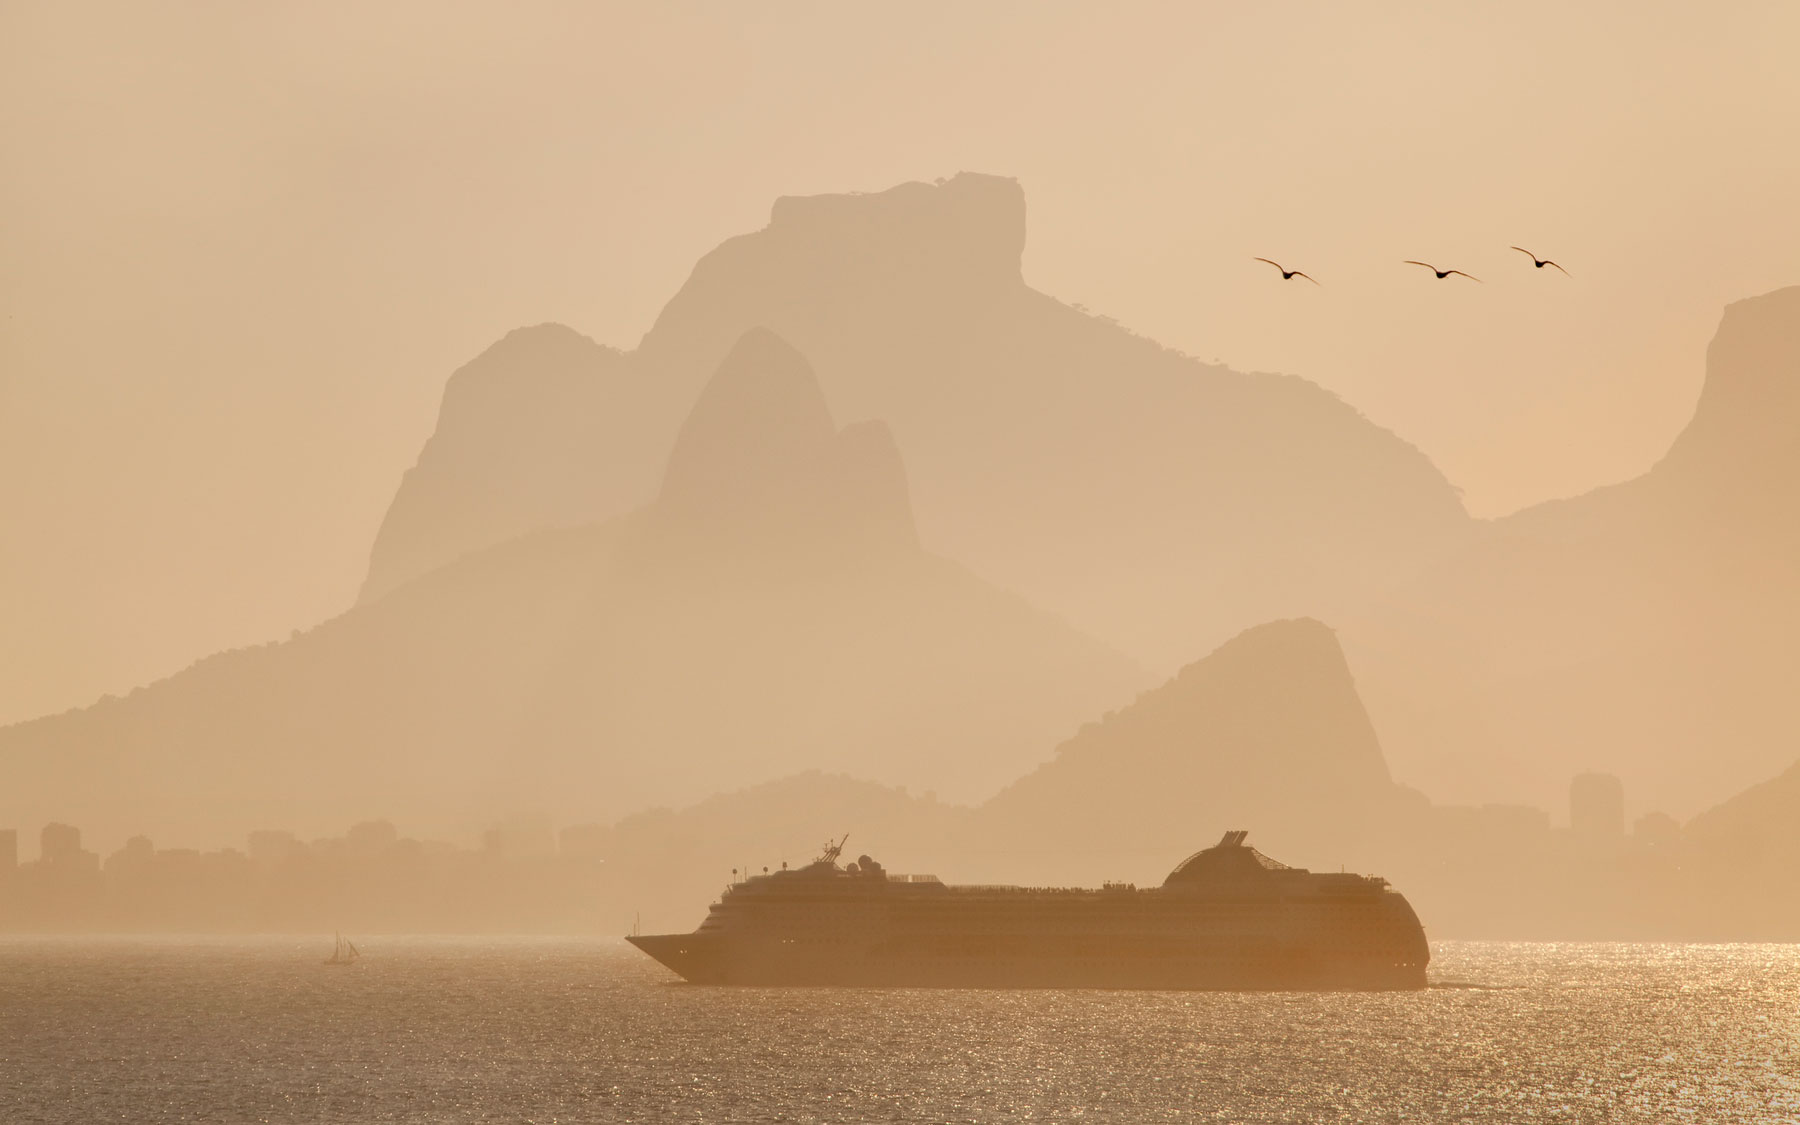 Cruise ships double as a hotel for the Rio Olympics